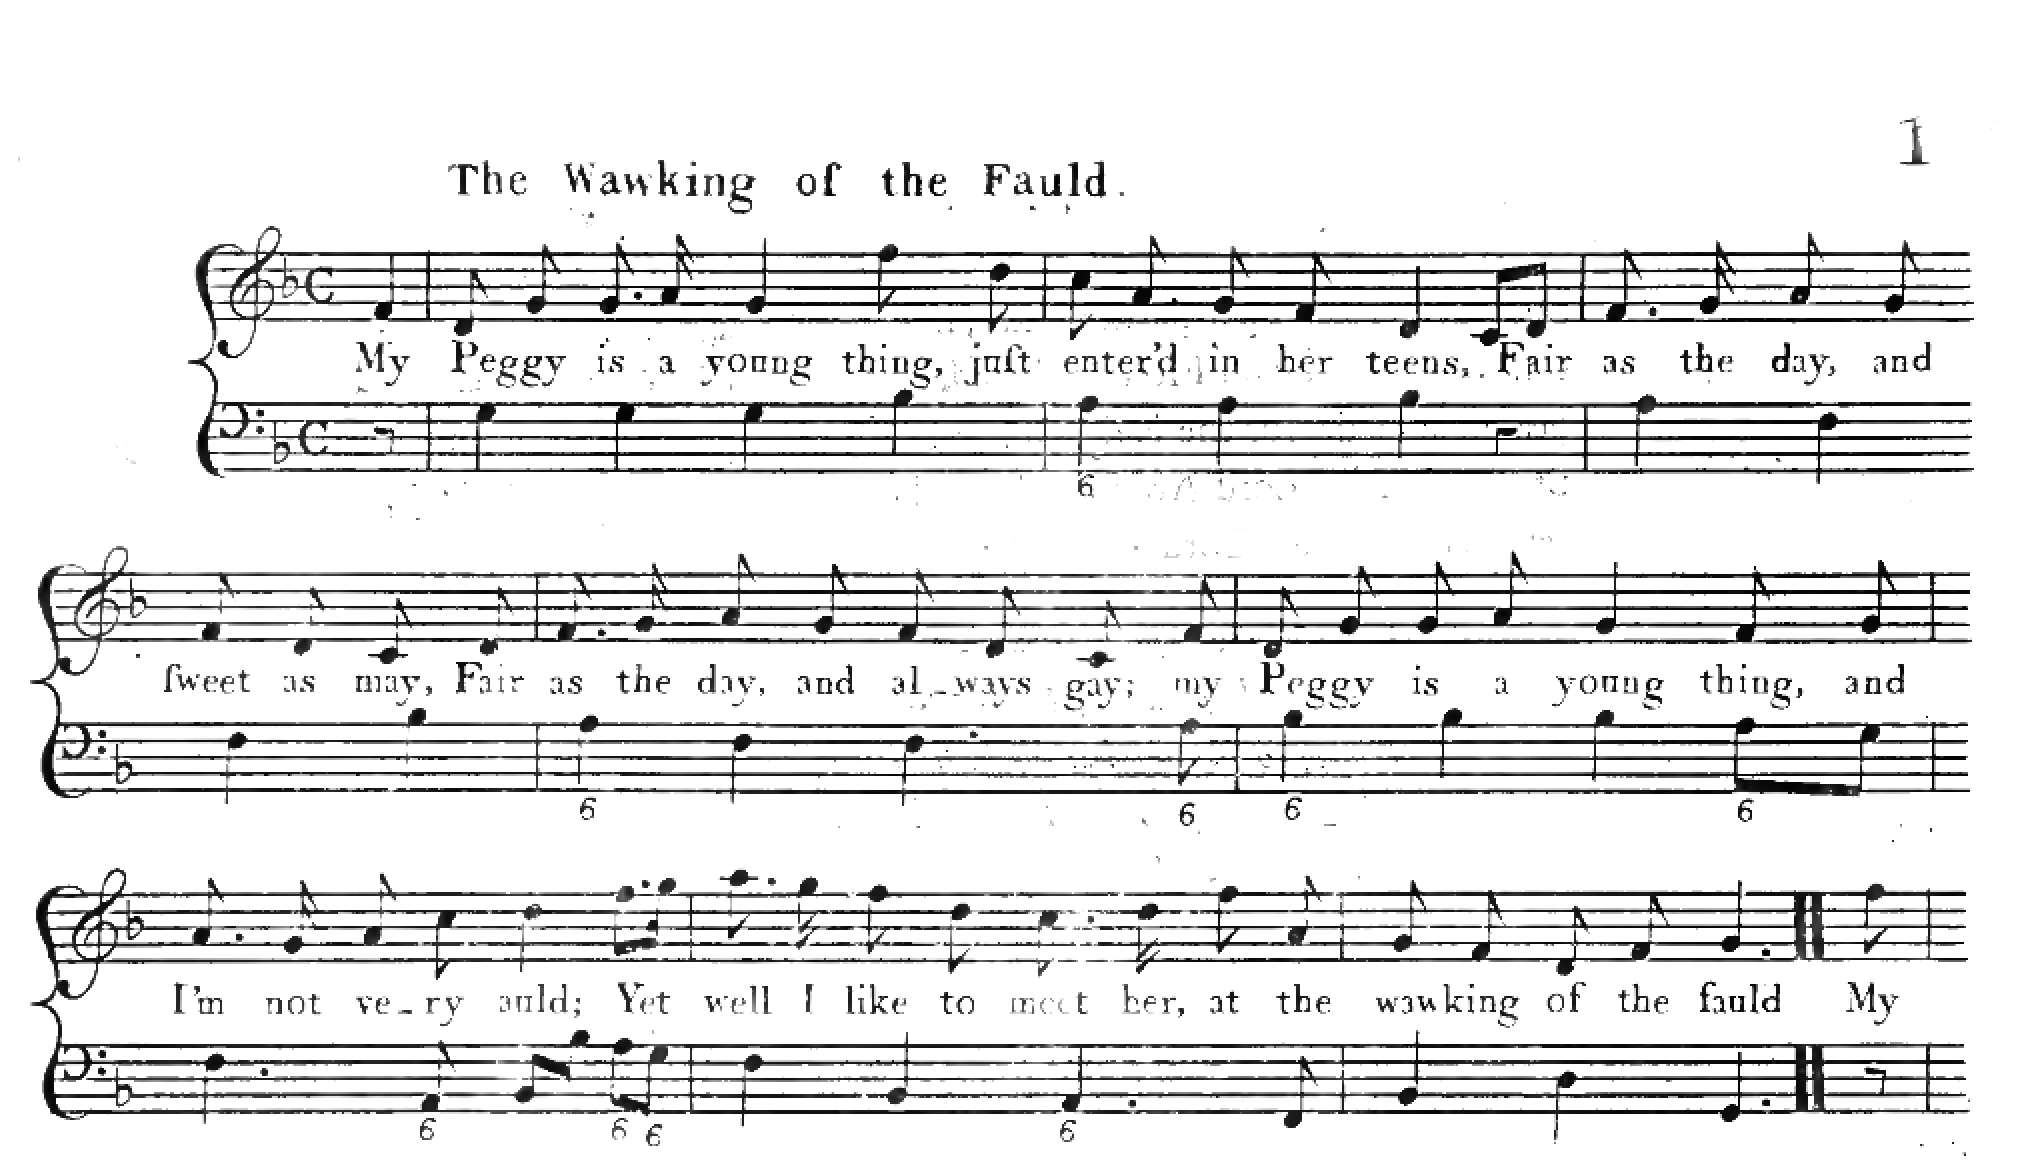 """ The Wawking of the Fauld "" is the first song in The Gentle Shepherd and is sung by Patie. All the songs in the play are based off popular folk and fiddle tunes of the time. While Ramsay changed the words to all the songs to contain his poetic text, he did not change the names of the tunes. This is one of the few tunes in the show that uses the title text in the song."